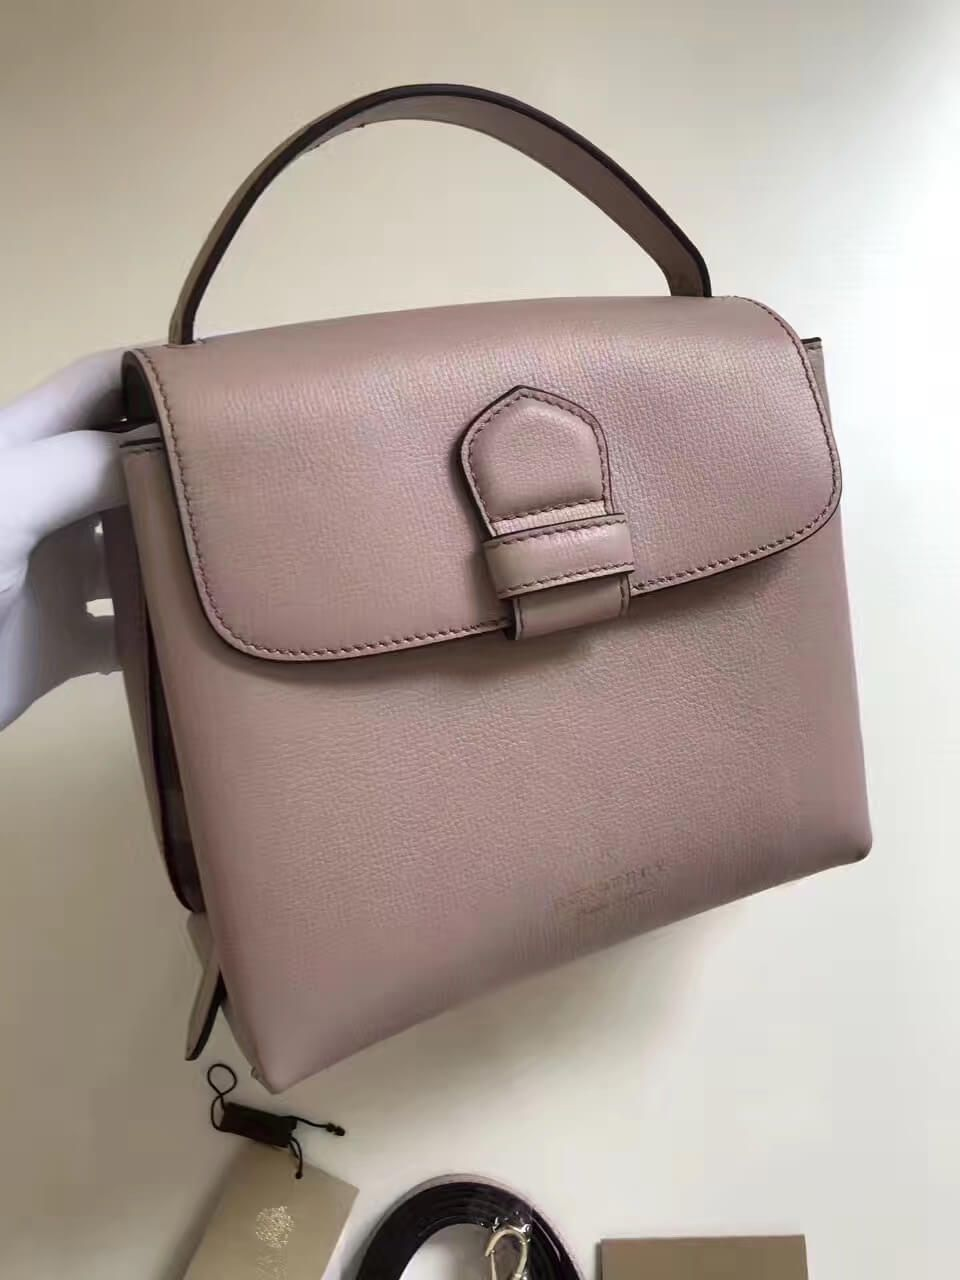 b5c387cf3bb4 Burberry Small Grainy Leather and House Check Tote Bag Pink 2017 ...